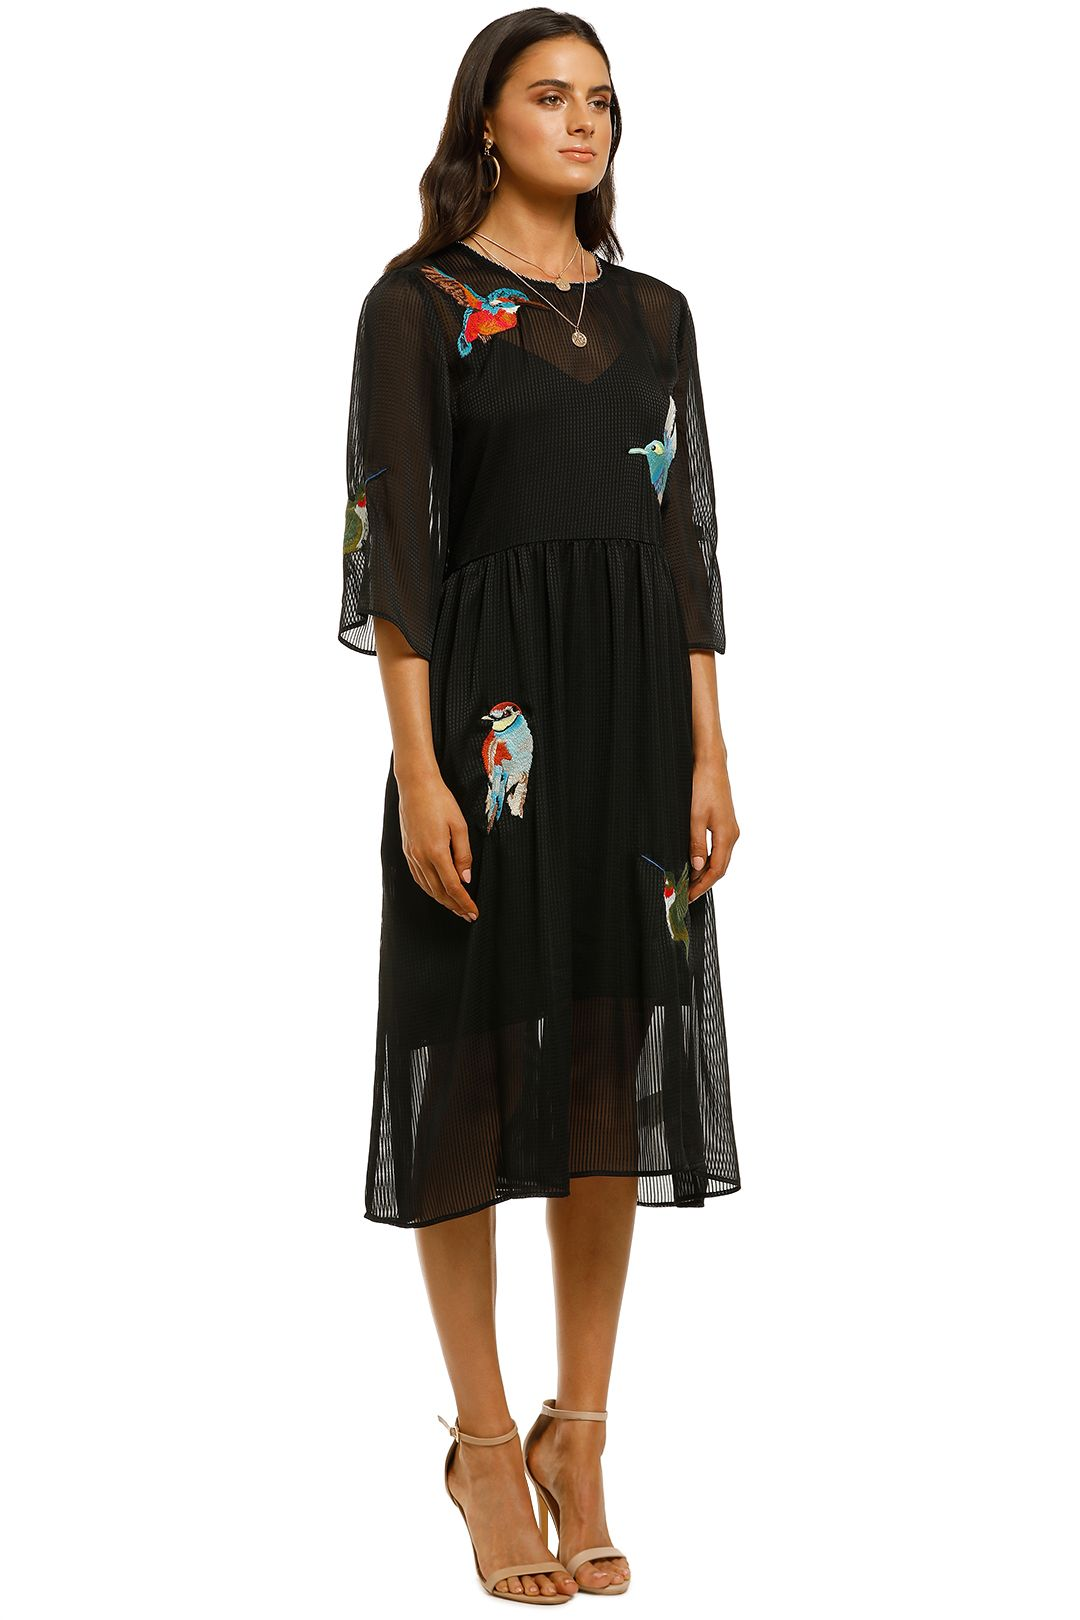 Curate-by-Trelise-Cooper-Sheer-Love-Dress-Black-Side